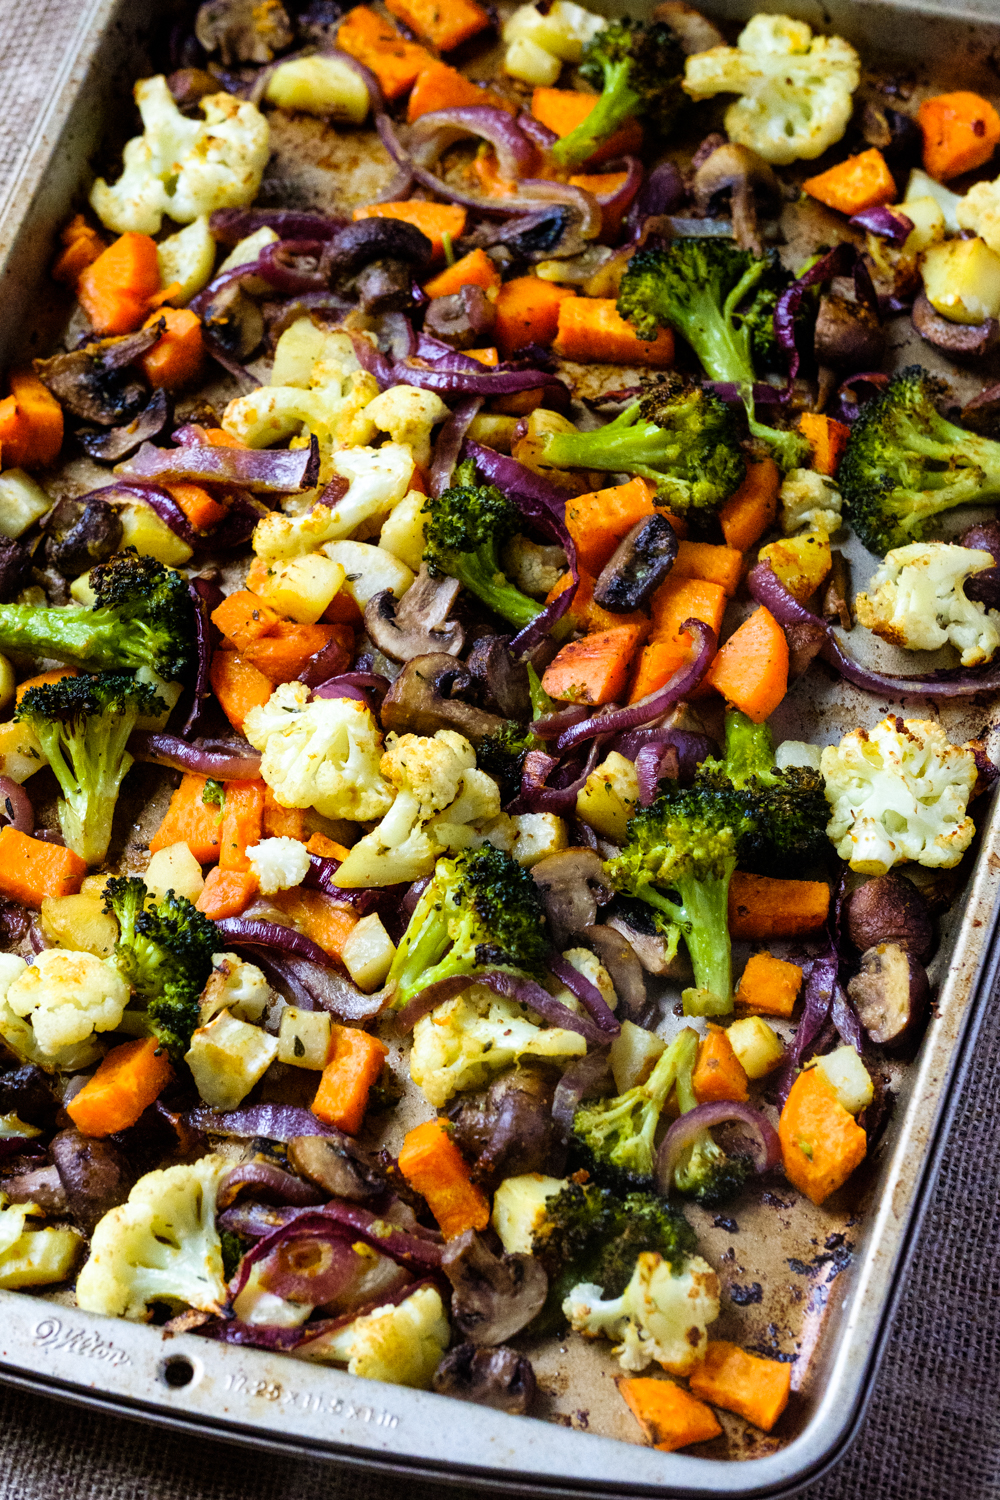 Easy Vegetable Medley out of the oven